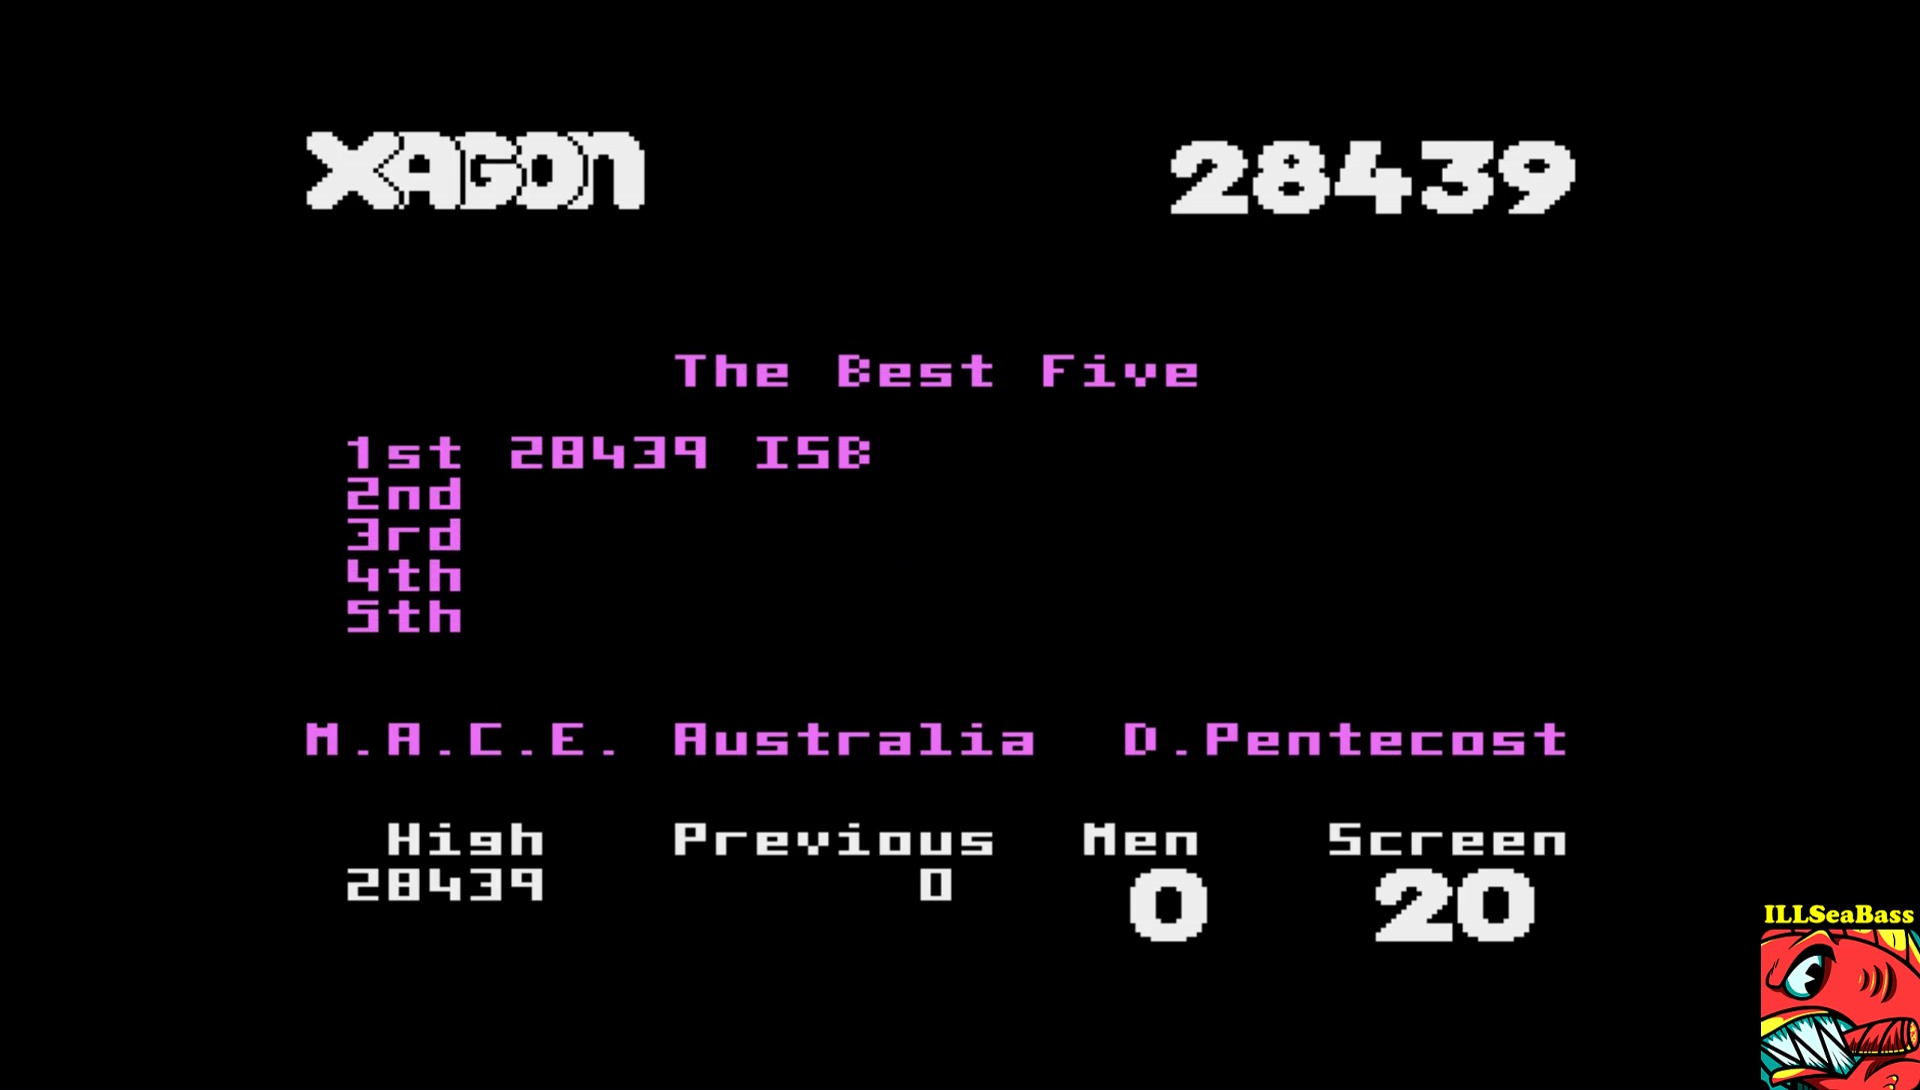 ILLSeaBass: Xagon (Atari 400/800/XL/XE Emulated) 28,439 points on 2017-06-22 00:29:19